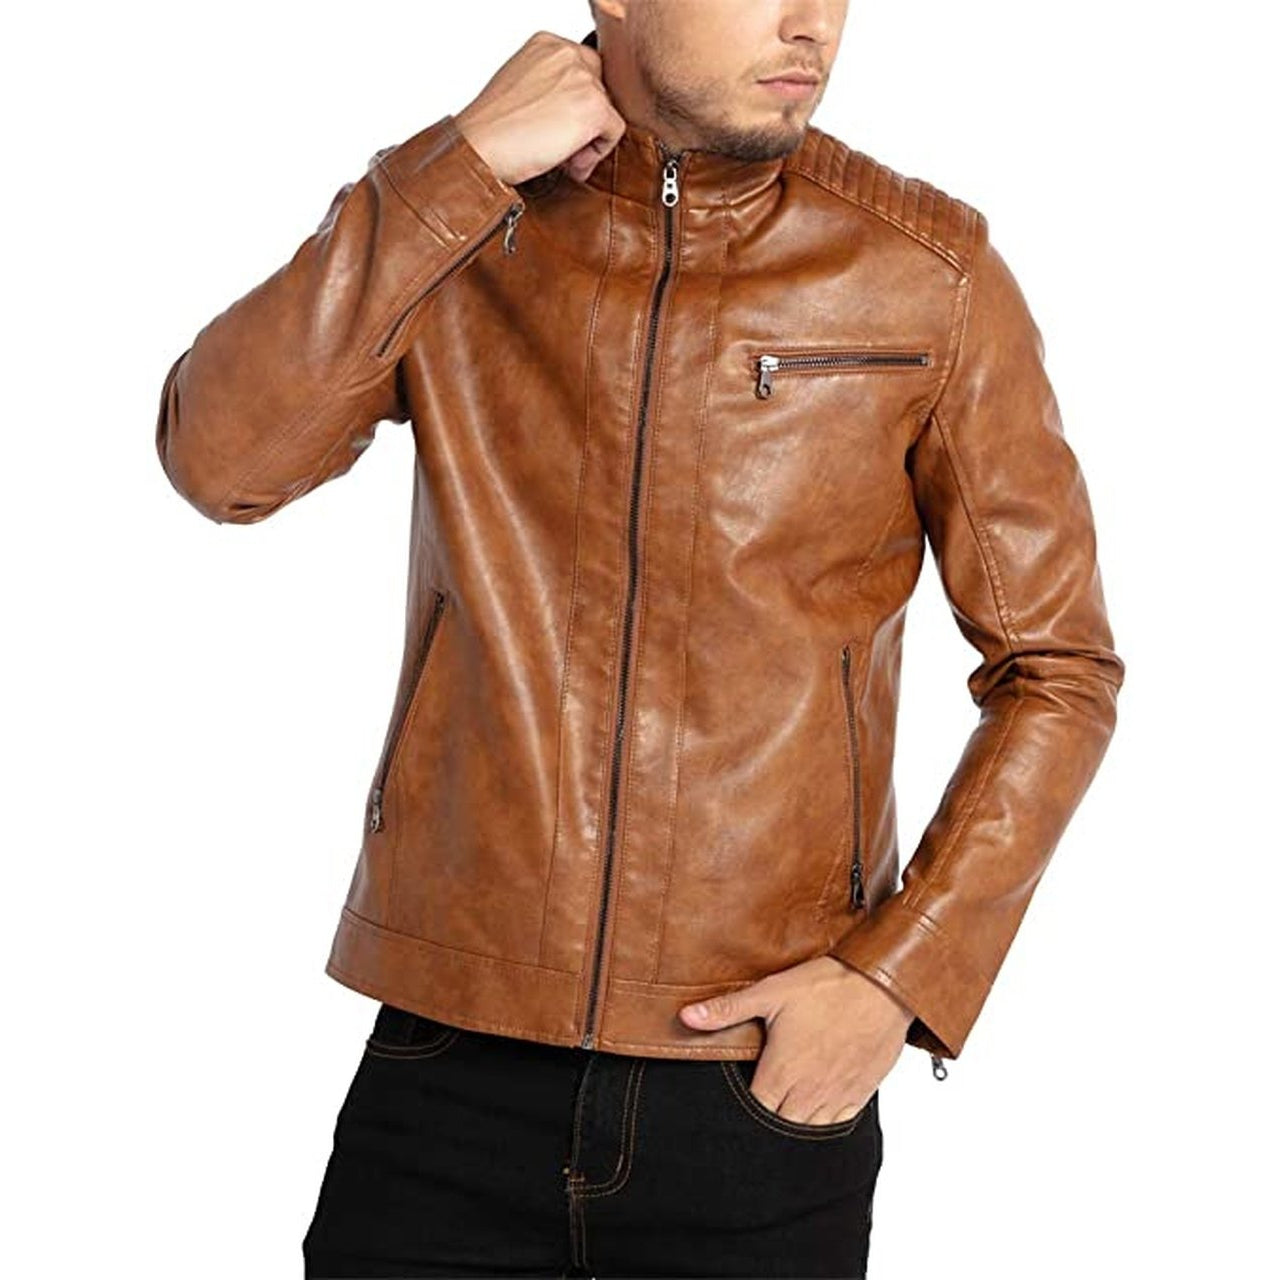 Men Stand Collar Leather Motorcycle Jacket Brown - Leather Jacket